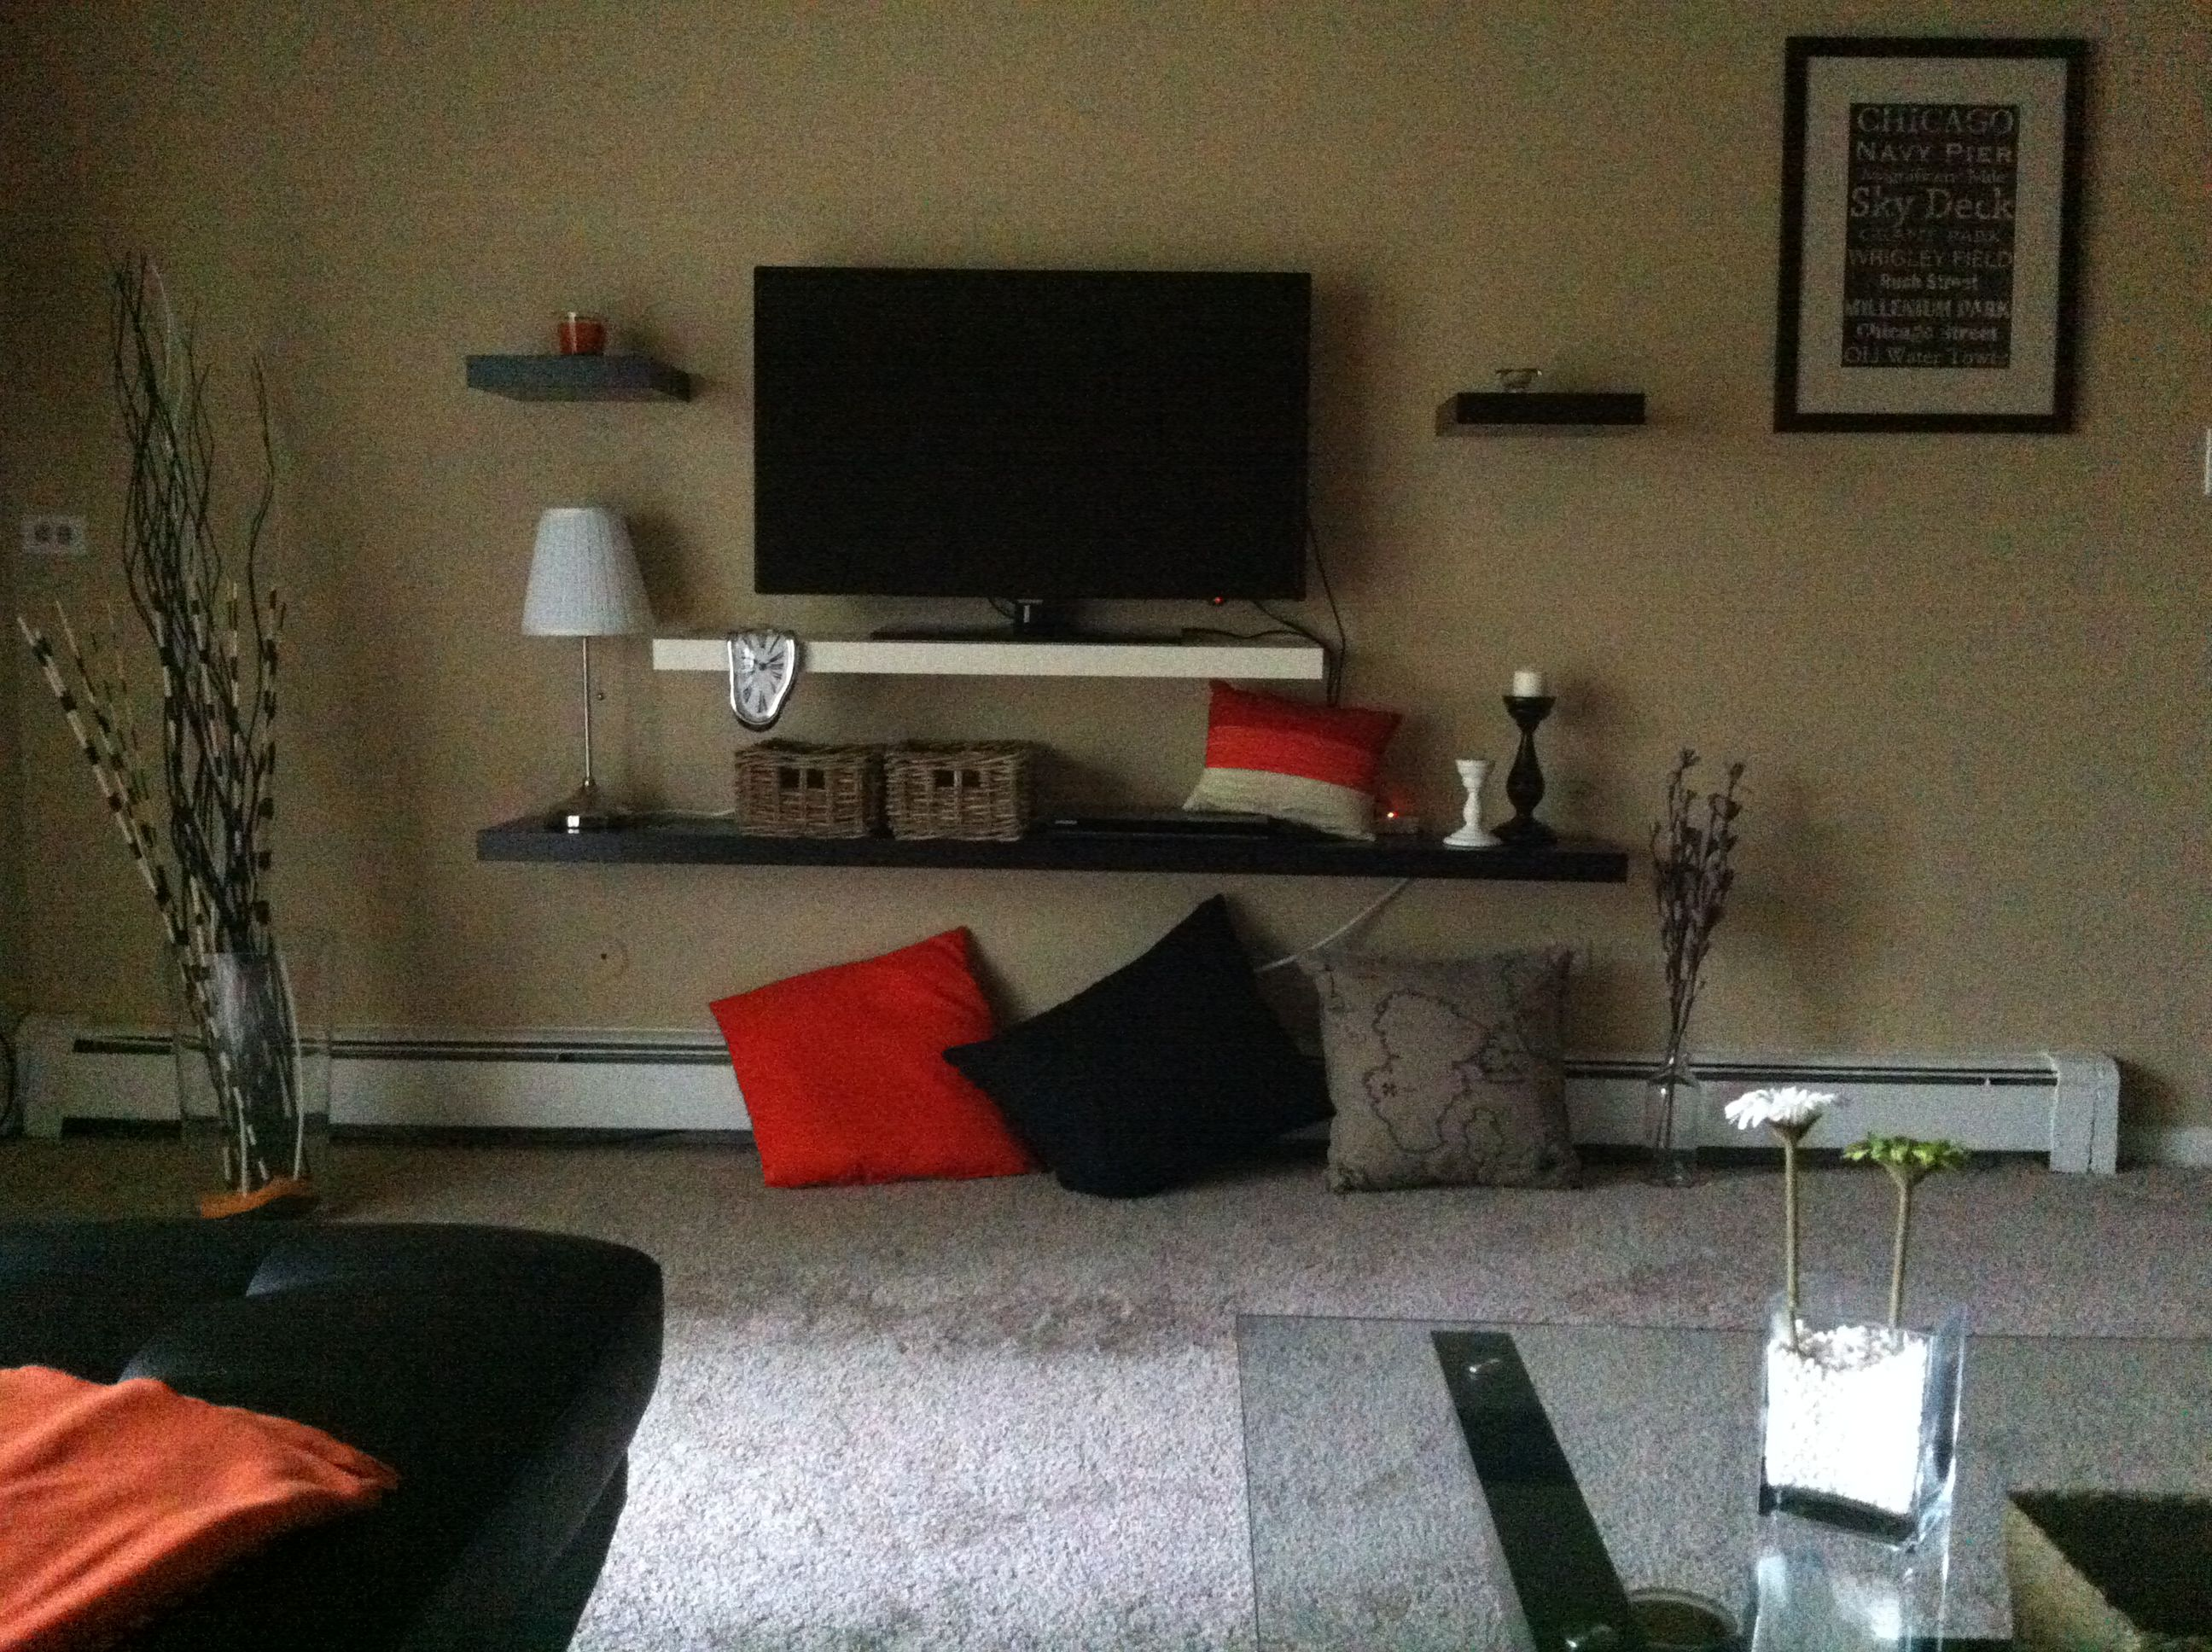 Do it yourself living room TV shelf. No TV stand needed. And it was much cheaper, even with all the accessories!